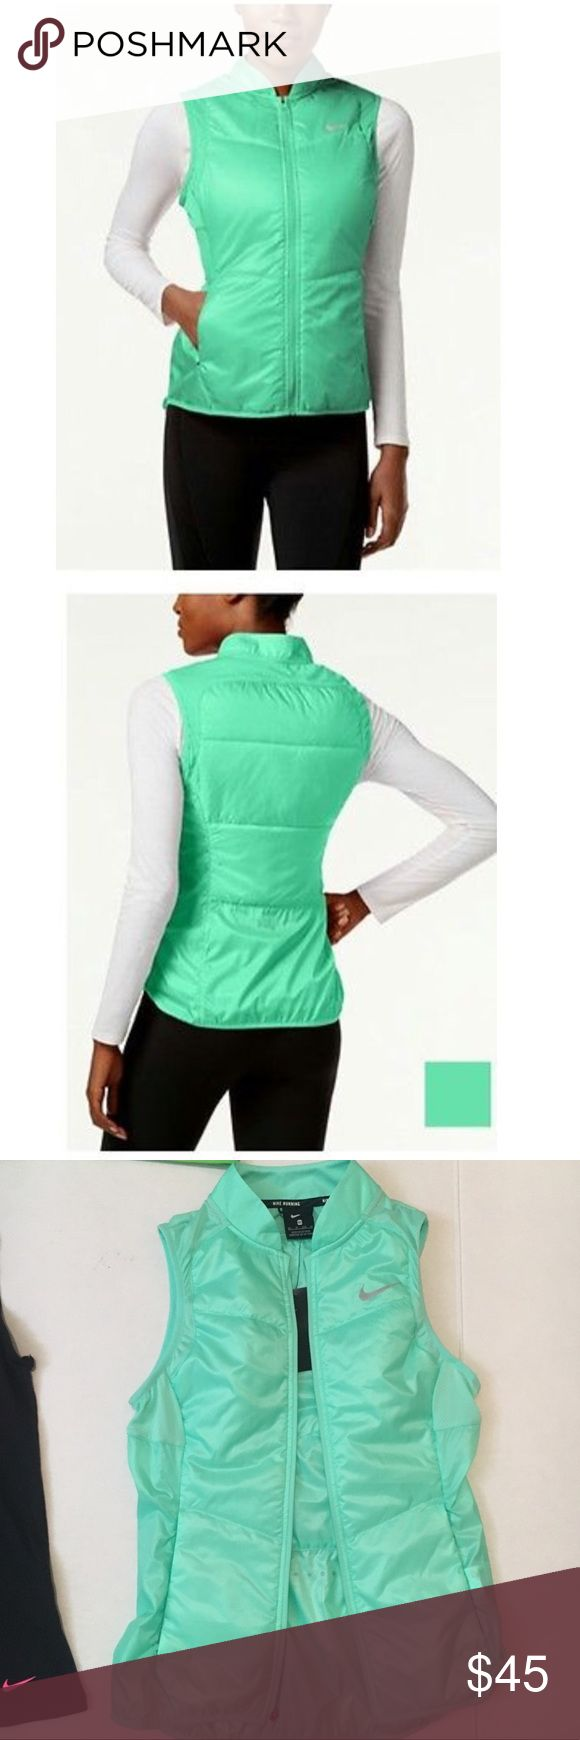 Nwt Nike polyfill running vest $80 Sz xs Nwt green Nike vest brand new. With tag! Nike Jackets & Coats Vests